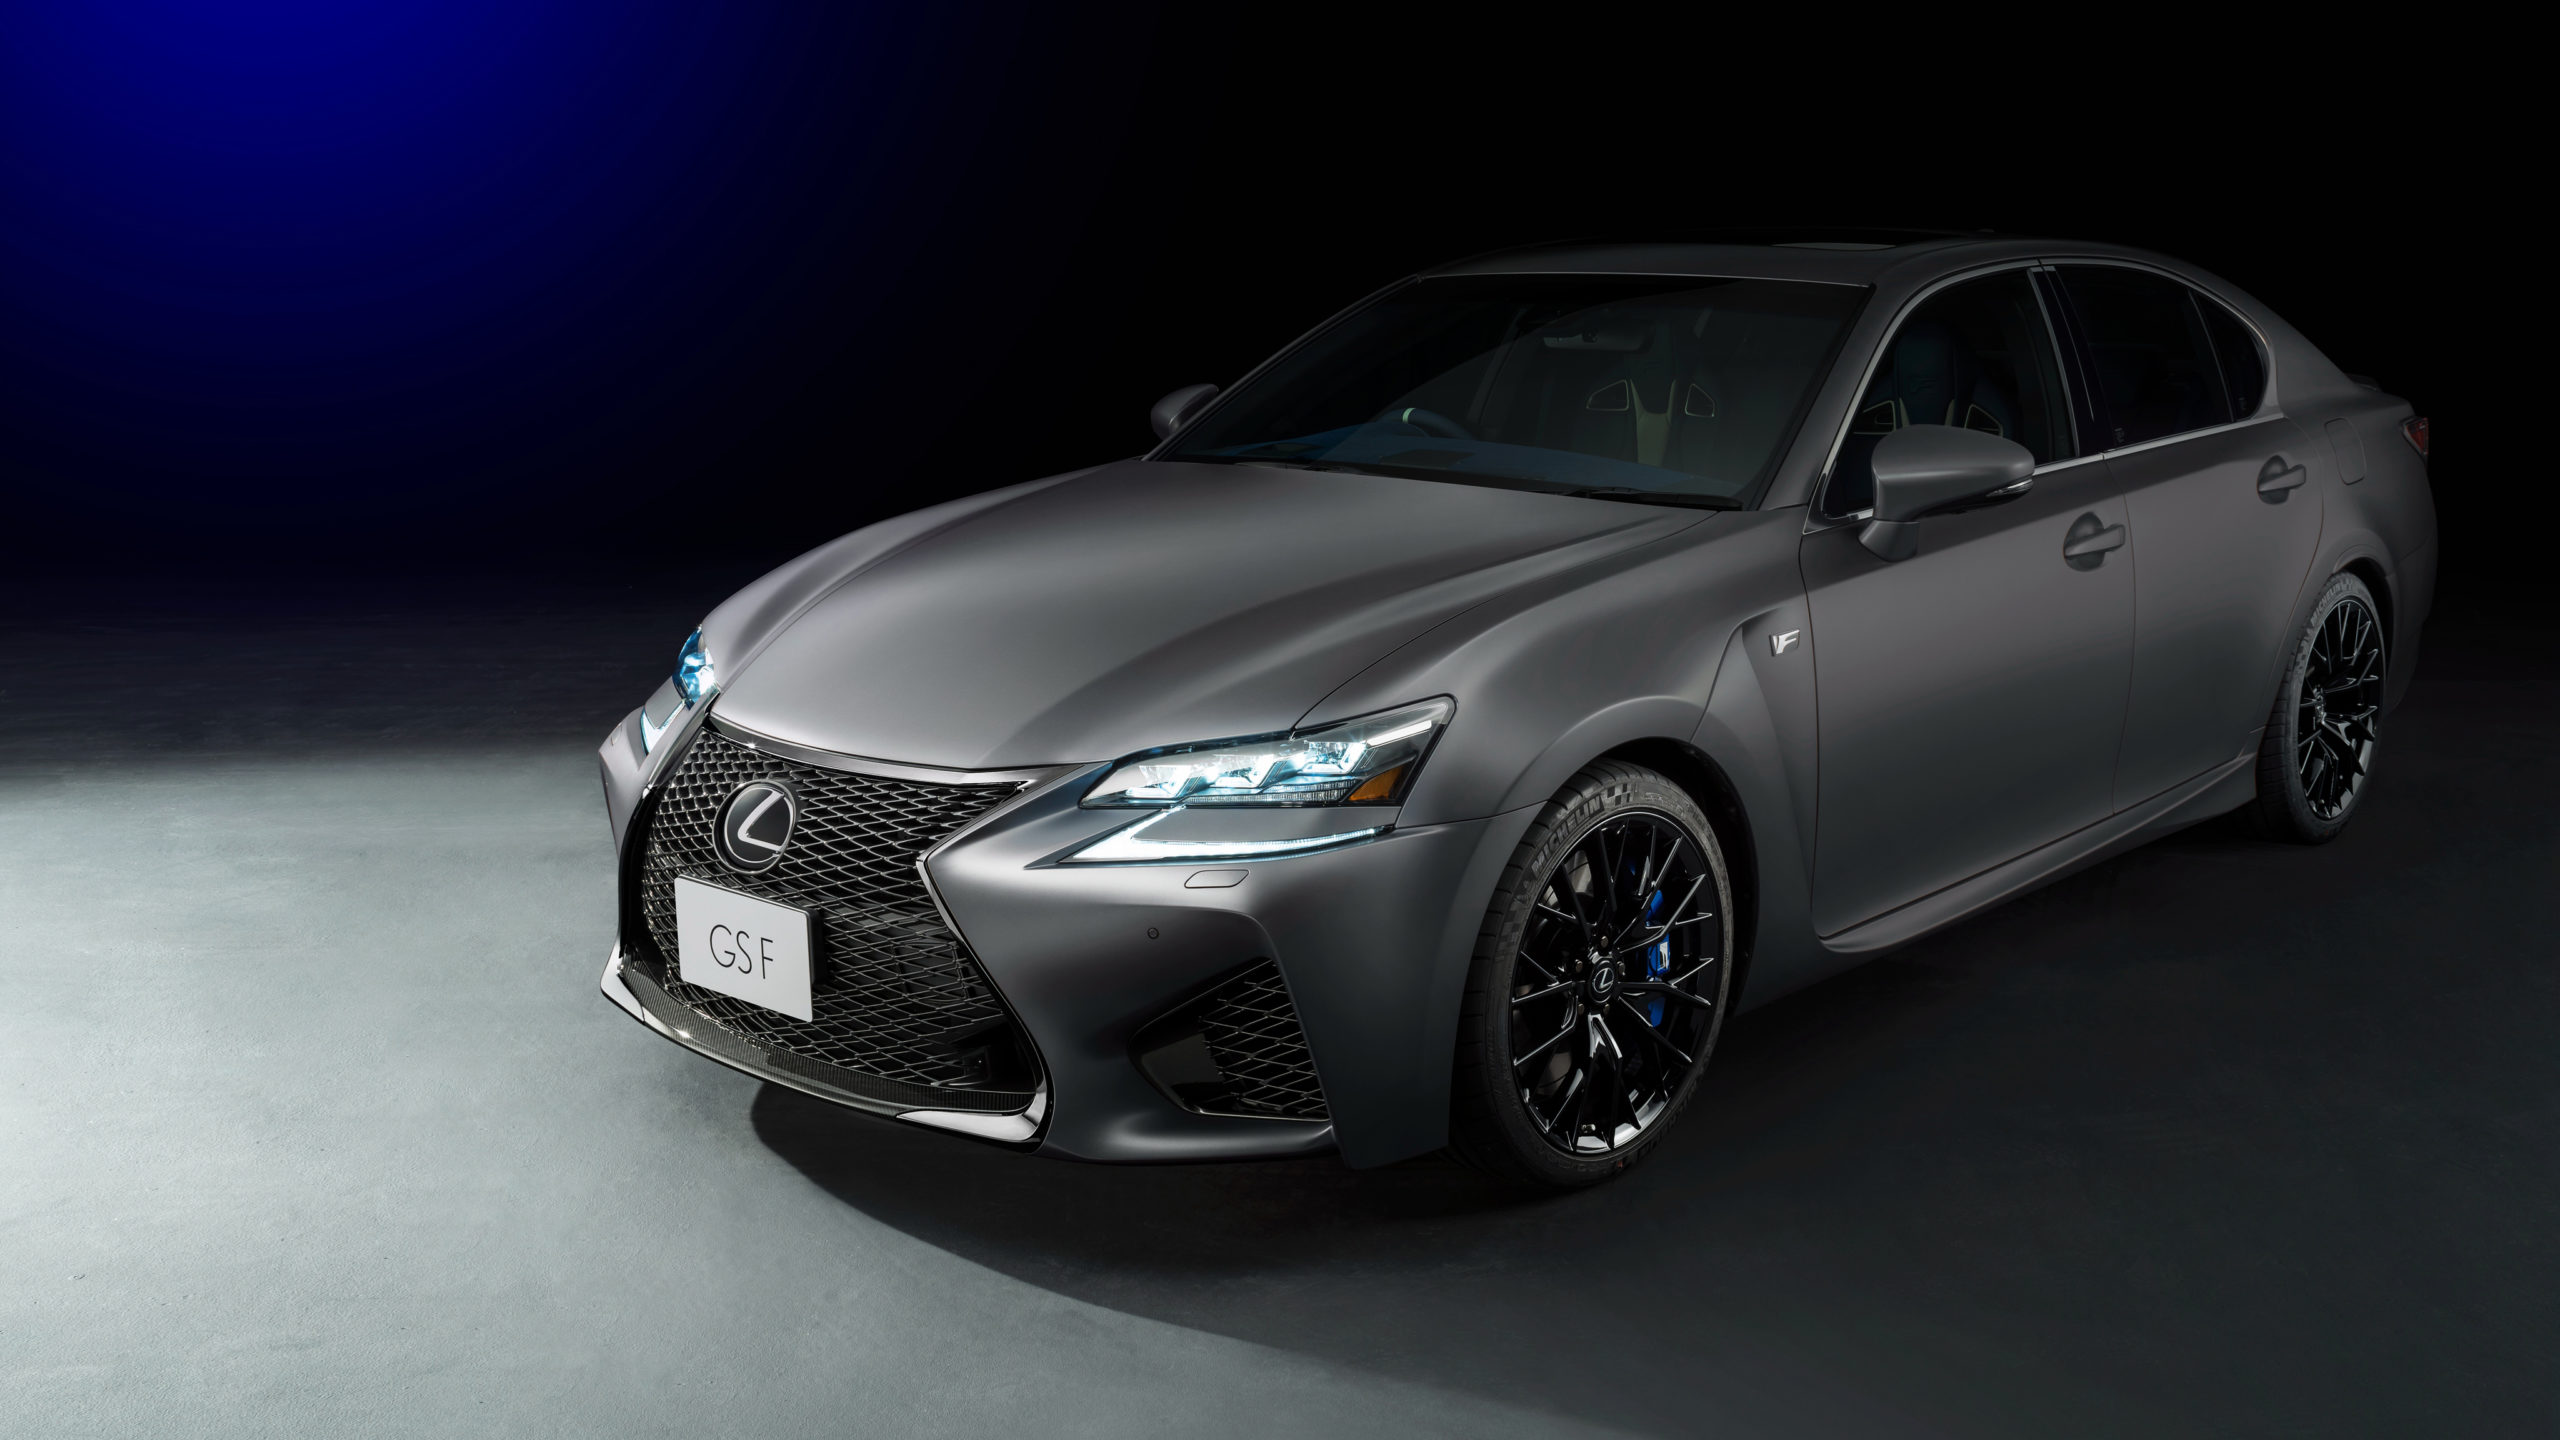 Download 2018 Lexus GS F 10th Anniversary Limited Edition 4K